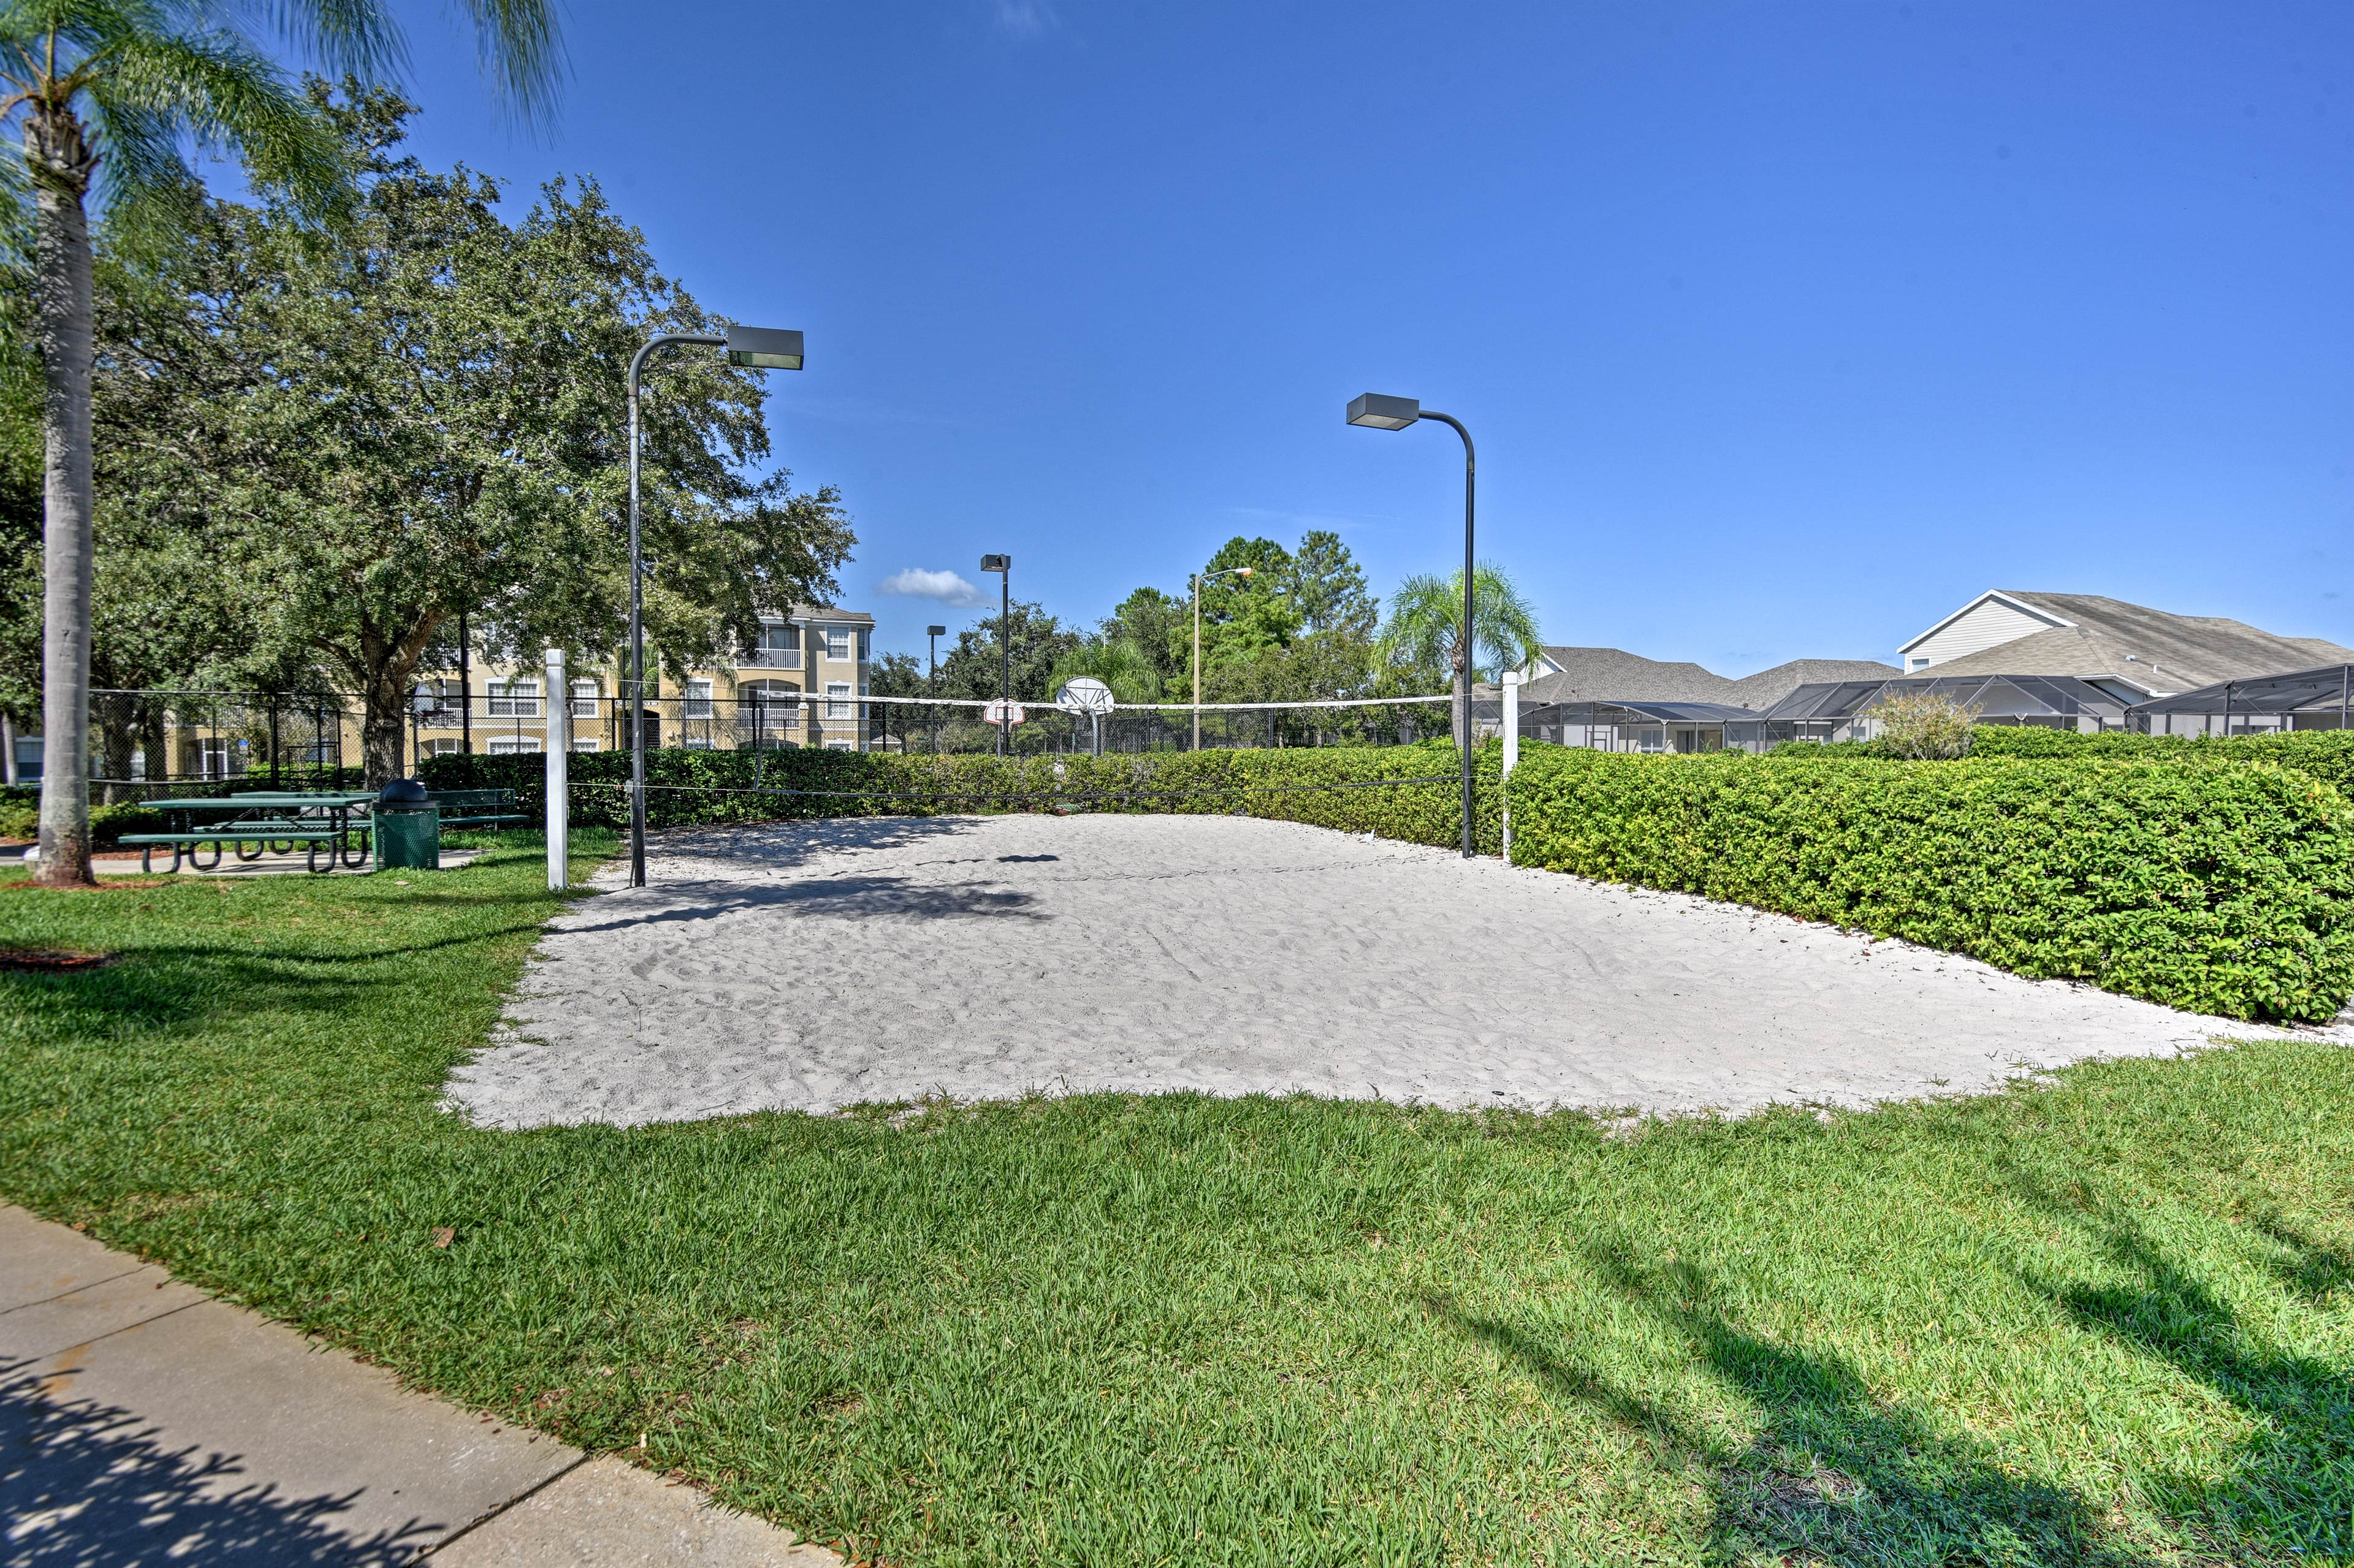 Walk just down the road to access community amenities.